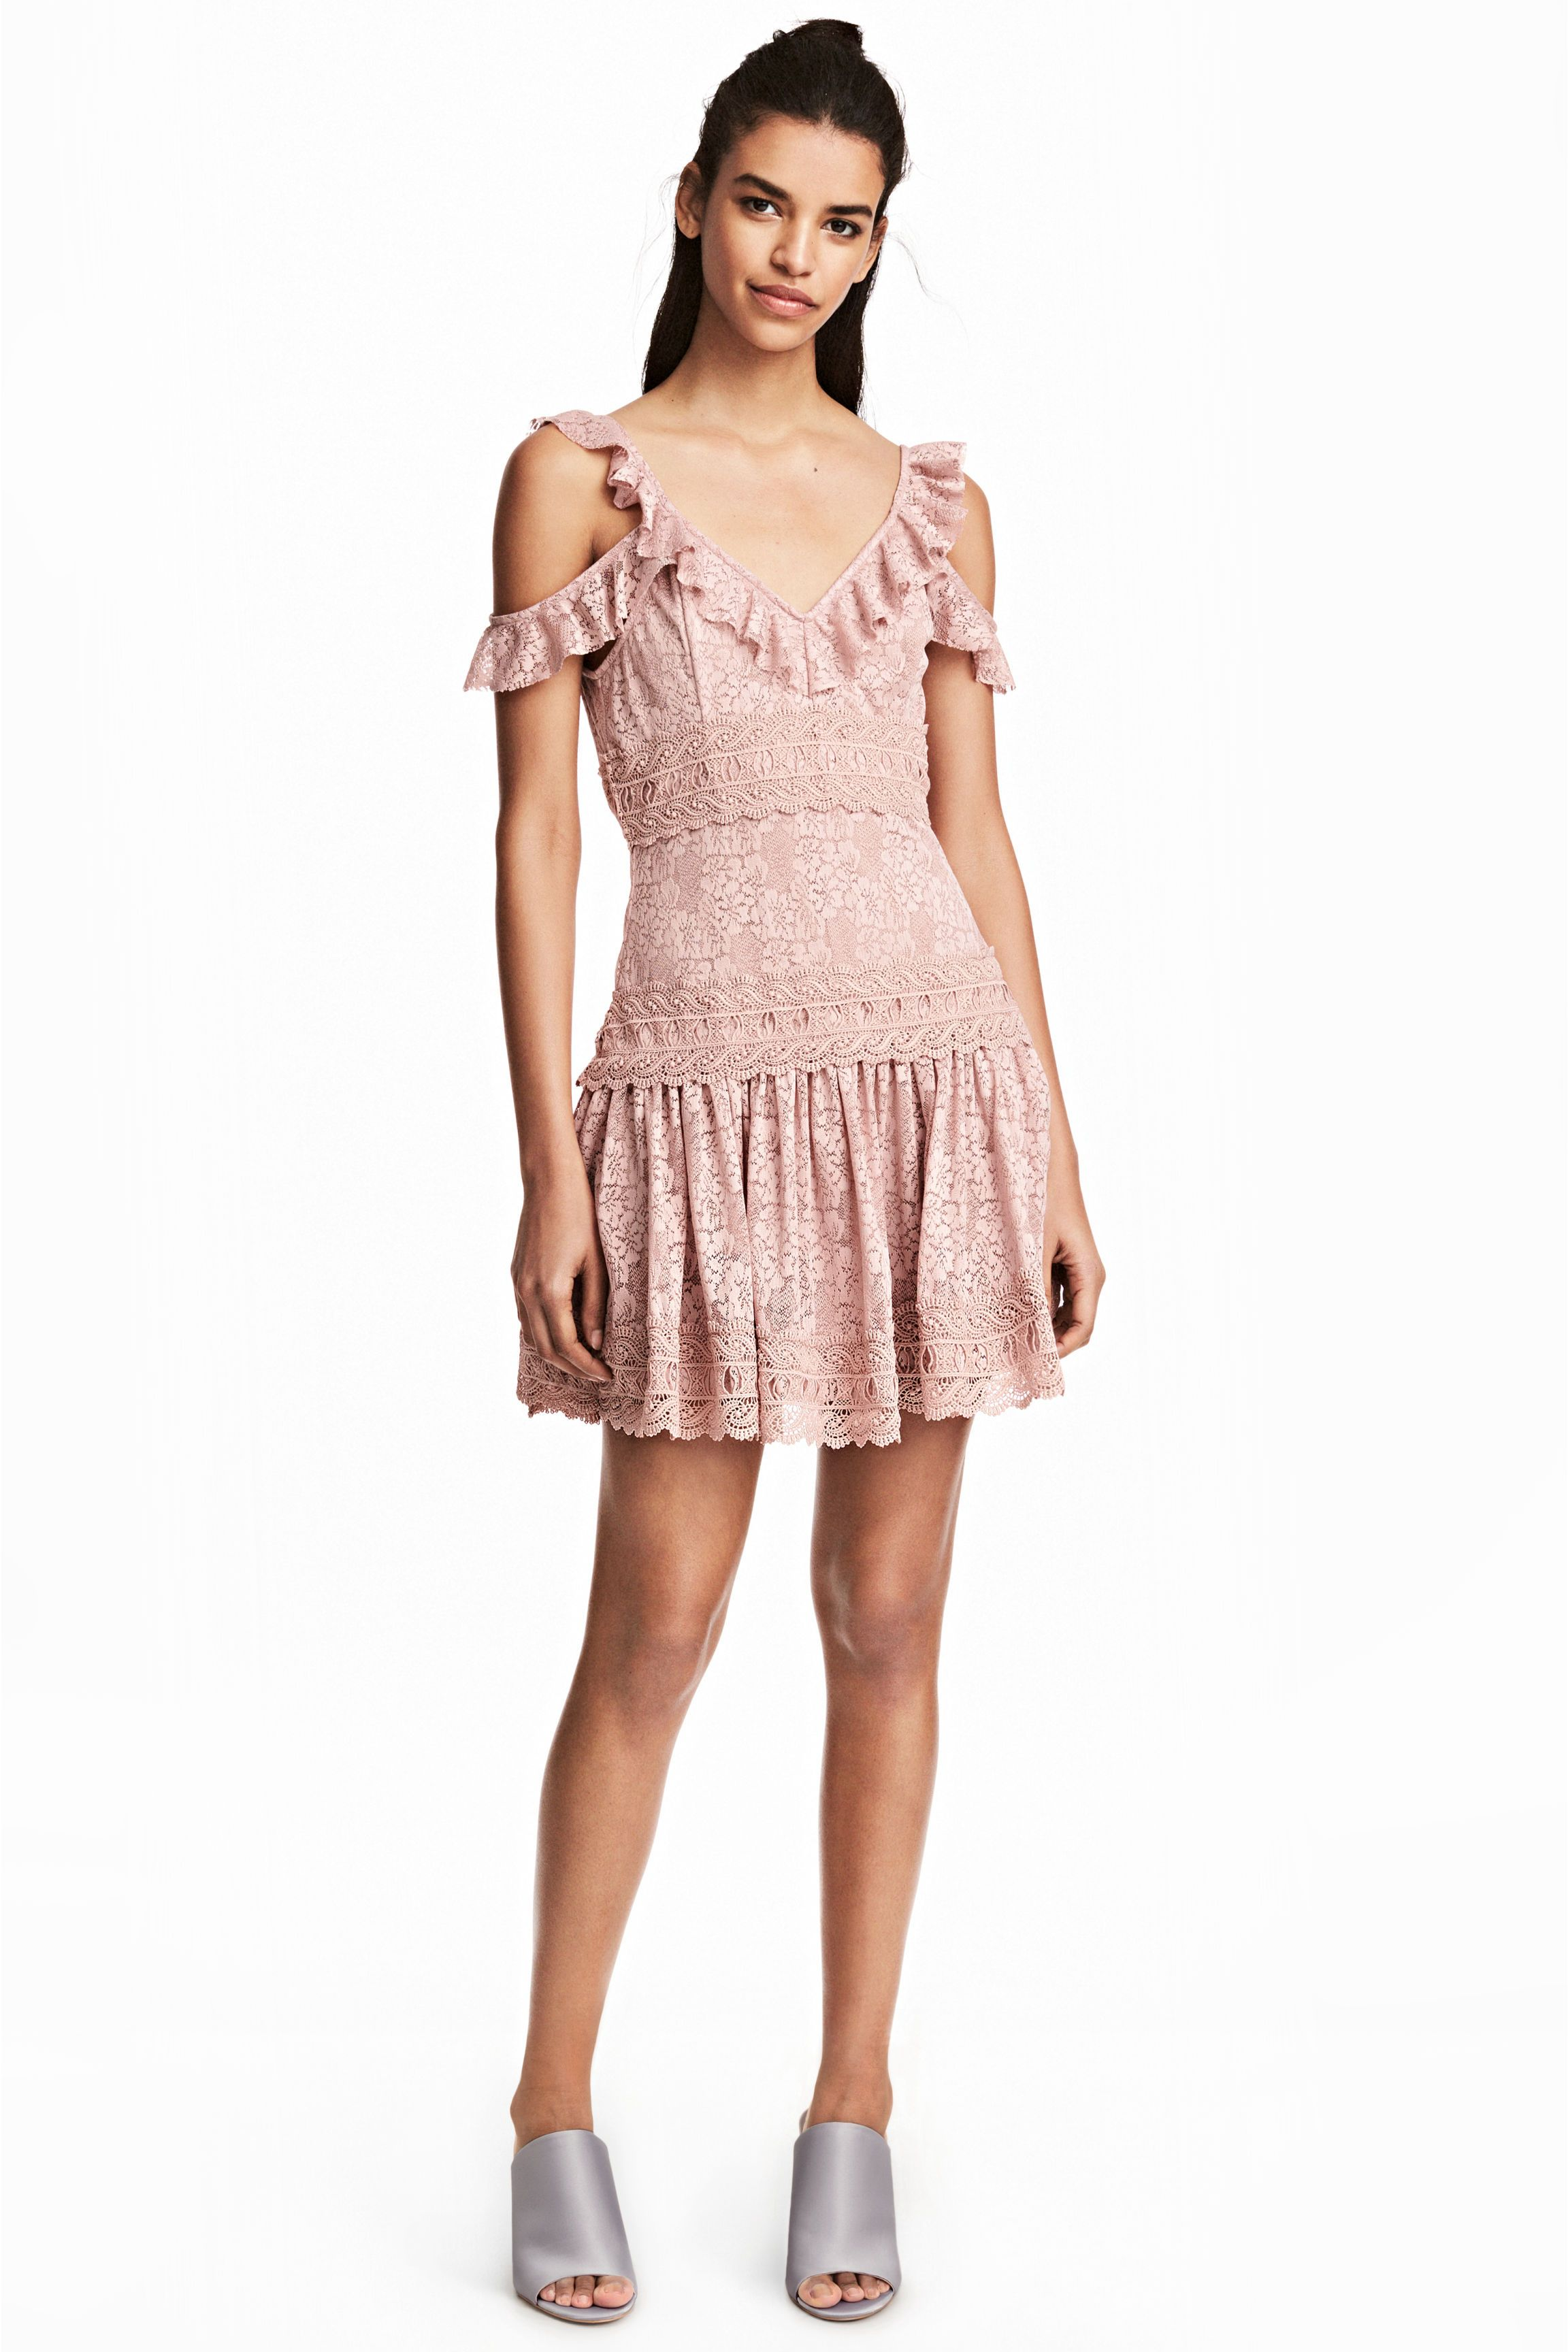 Lace dress | Pinterest | Lace dress, Rose and Zip